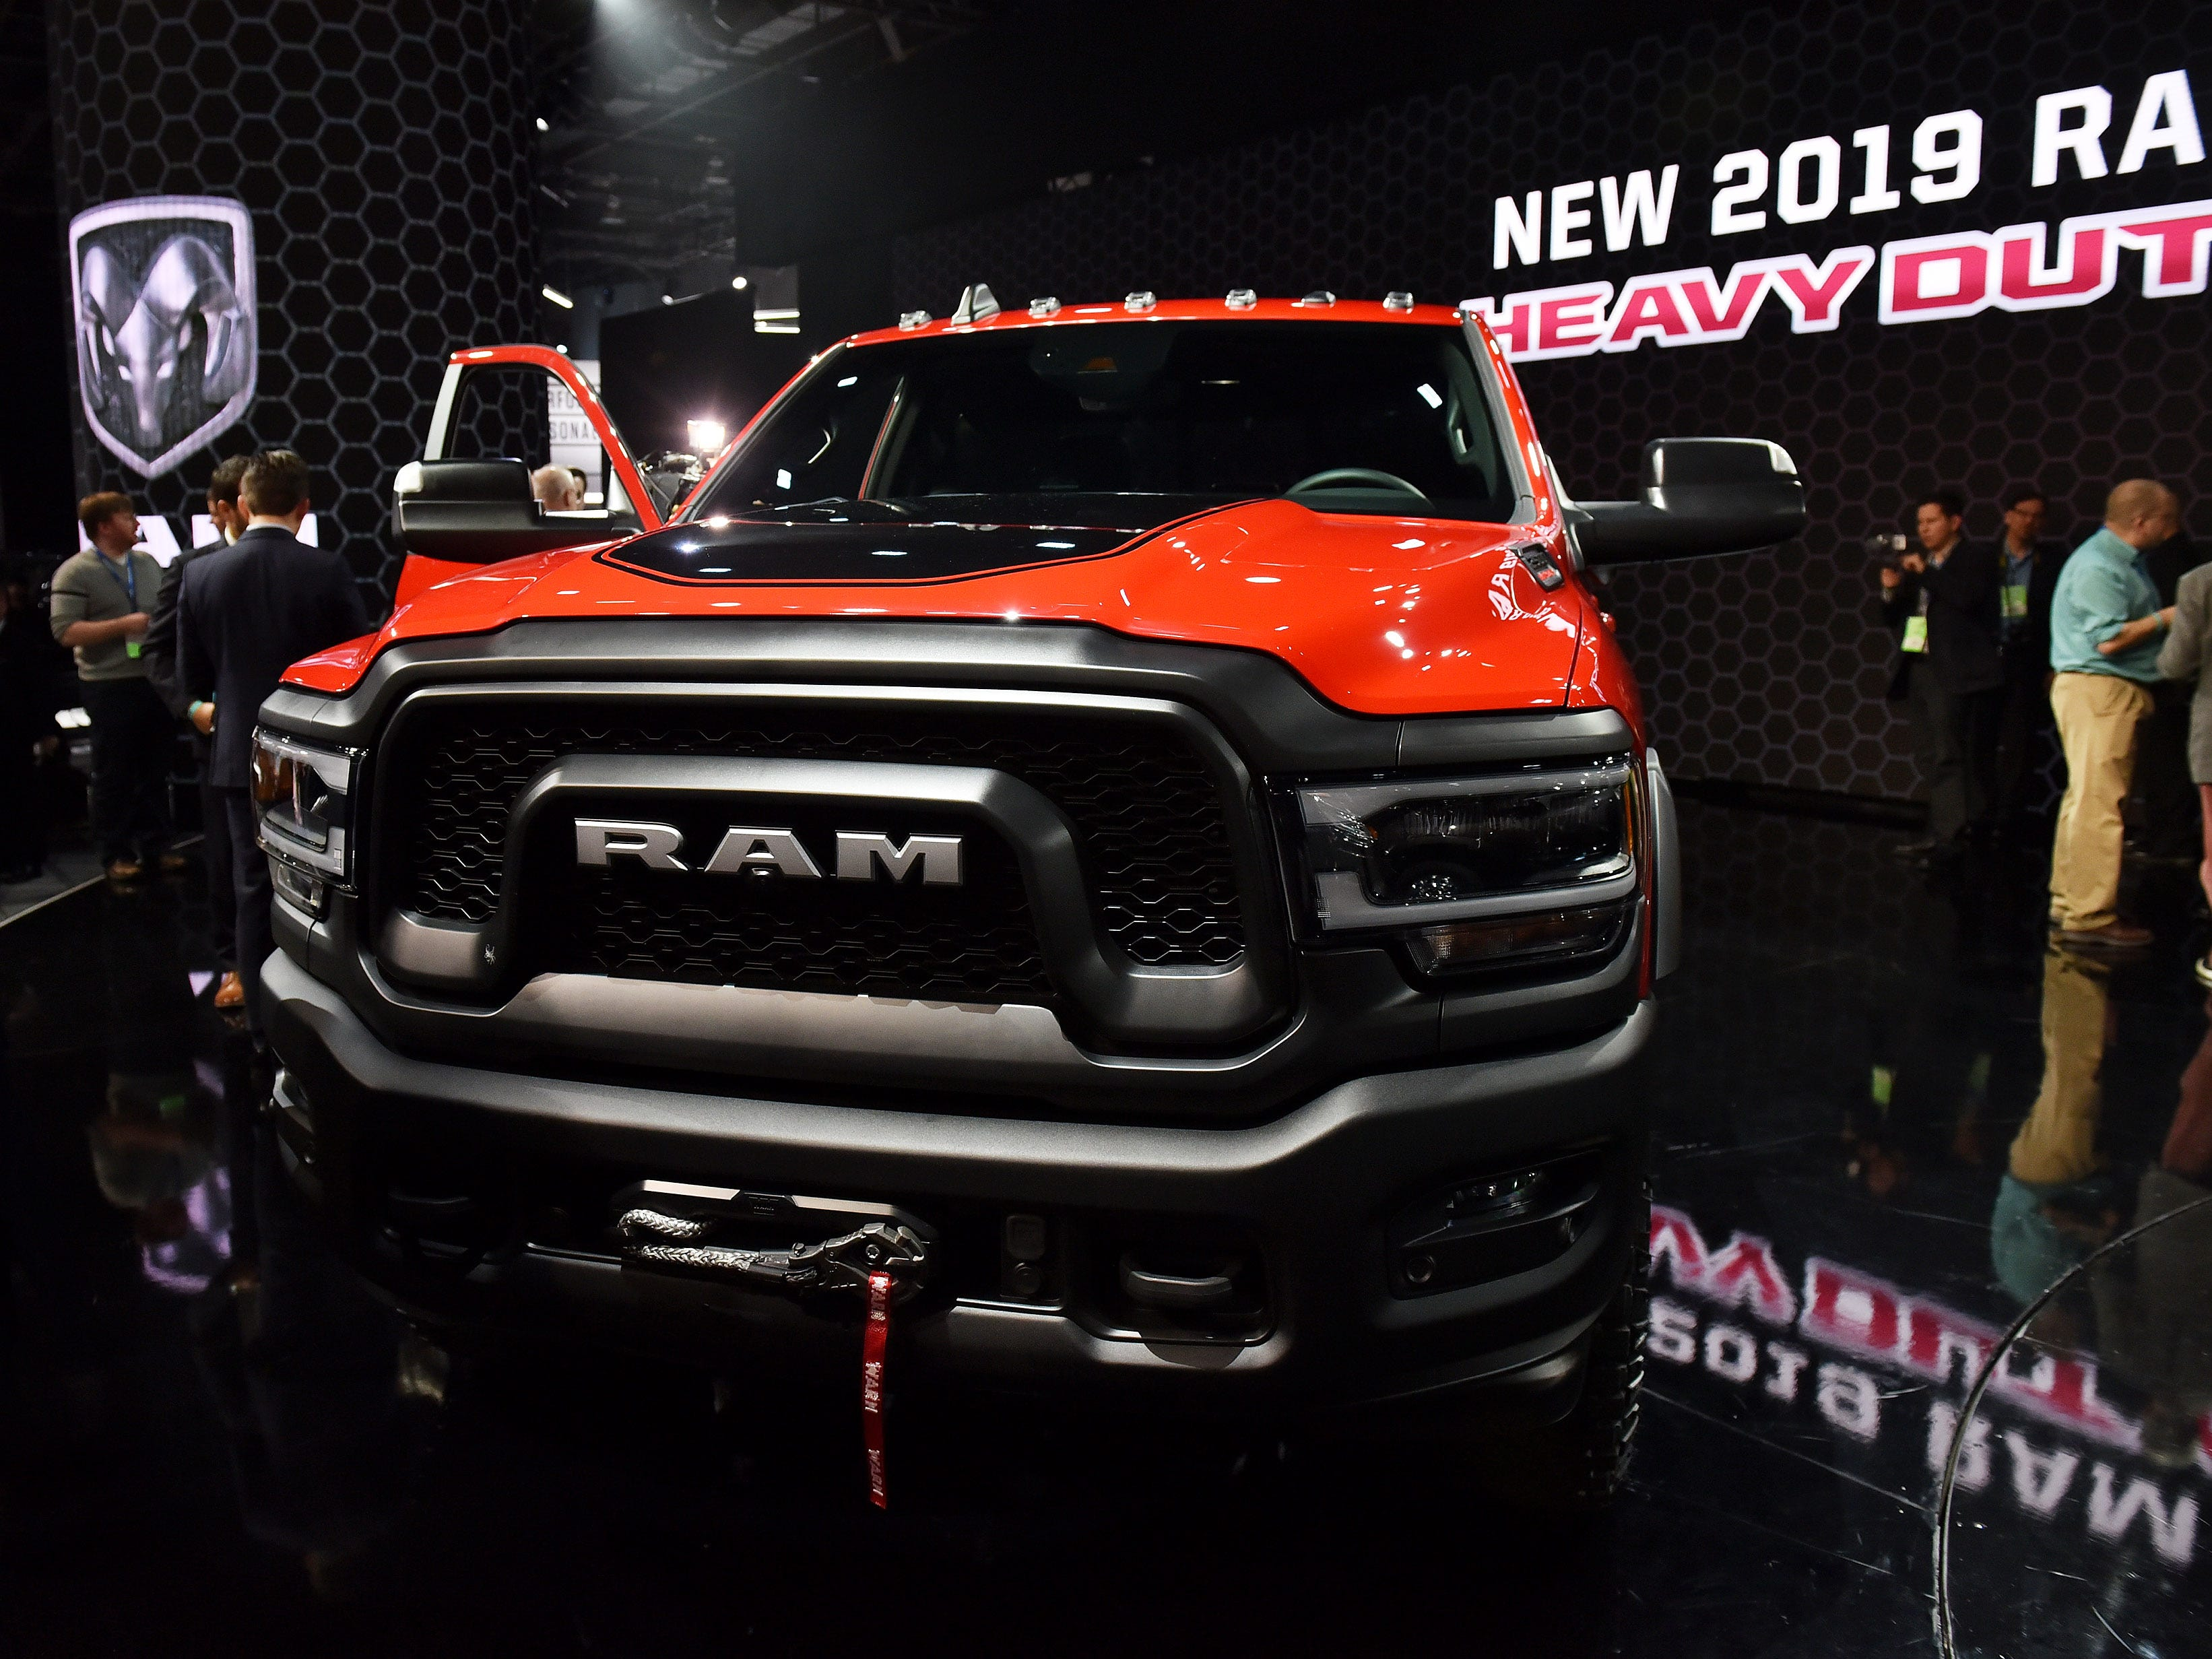 Ram heavy duty trucks:  2018 was a big year for pickups, and this year could be even bigger for big pickups. People check out the 2019 Ram Power Wagon, one of three new heavy duty trucks unveiled at the North American International Auto Show.